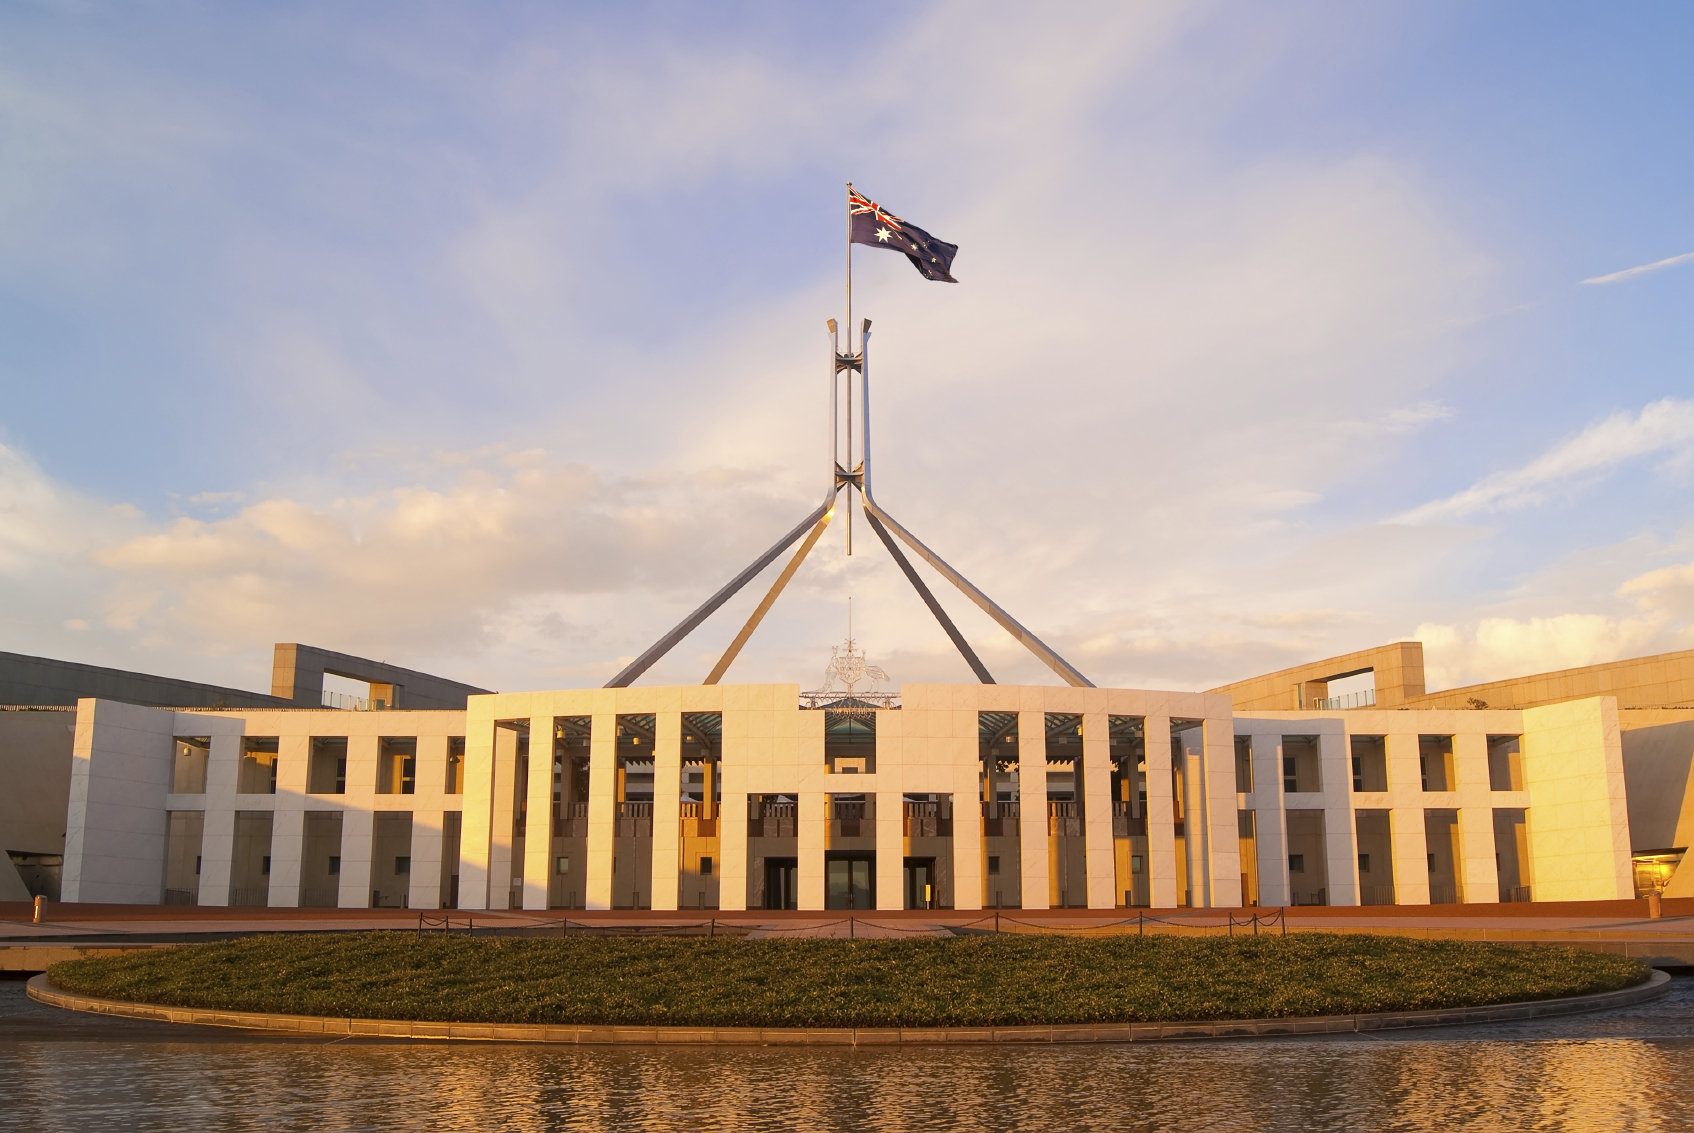 Parliament-House-in-Canberra-at-Sunset-iStock.jpg